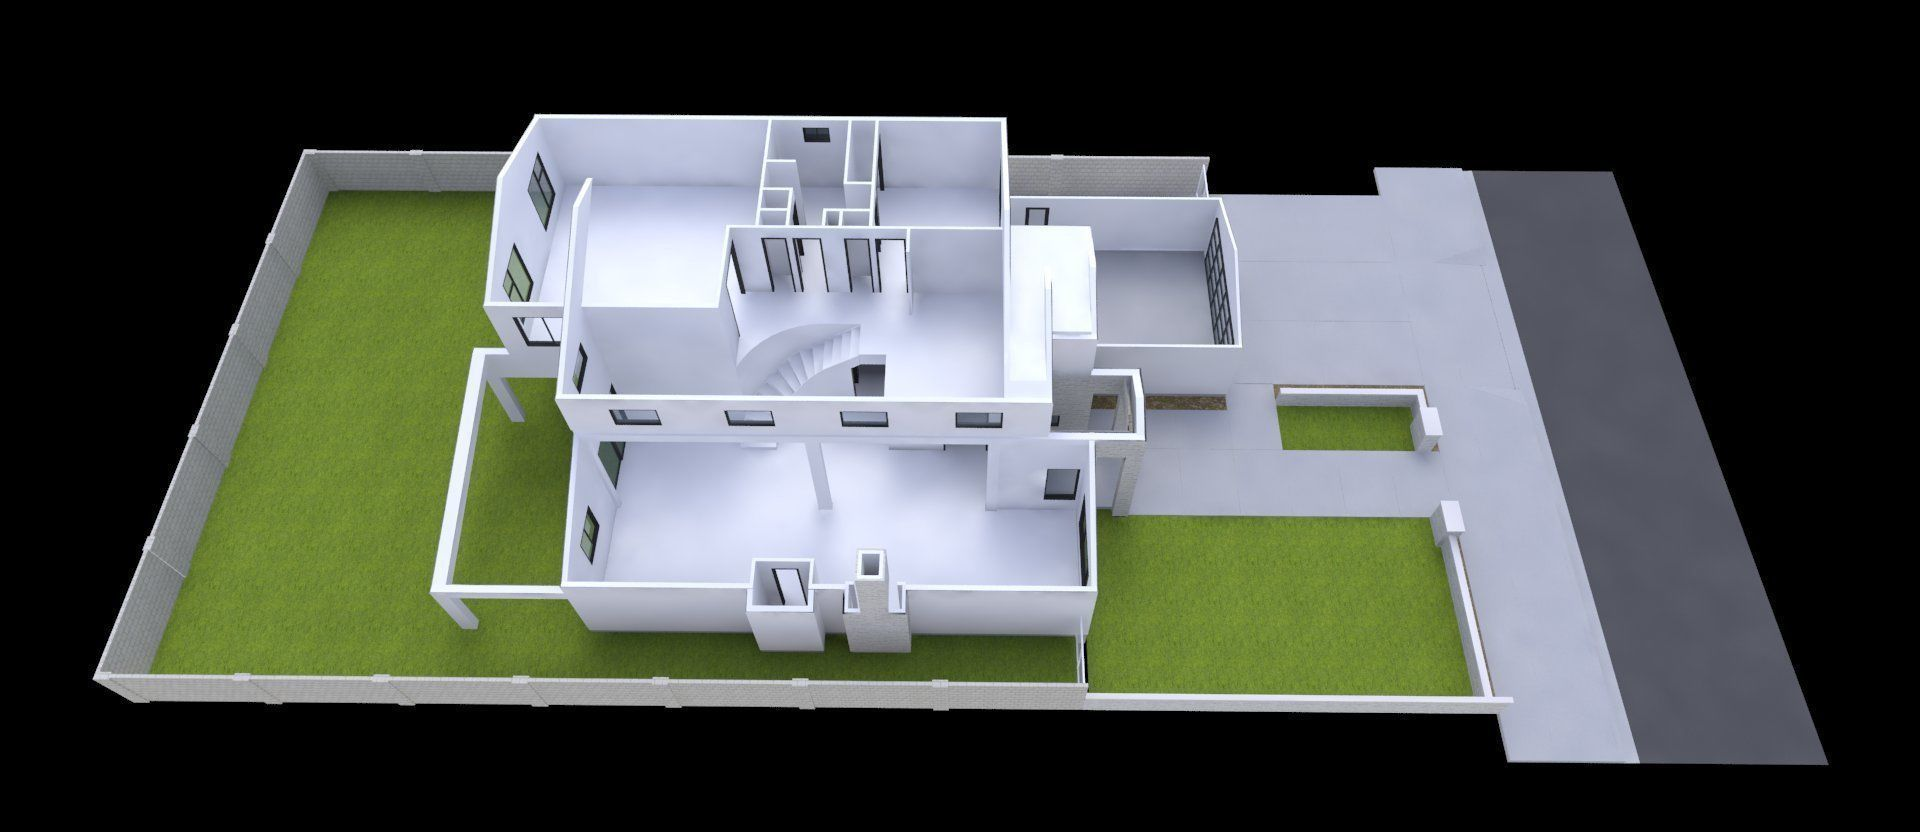 modern house 2 story 4 bedrooms